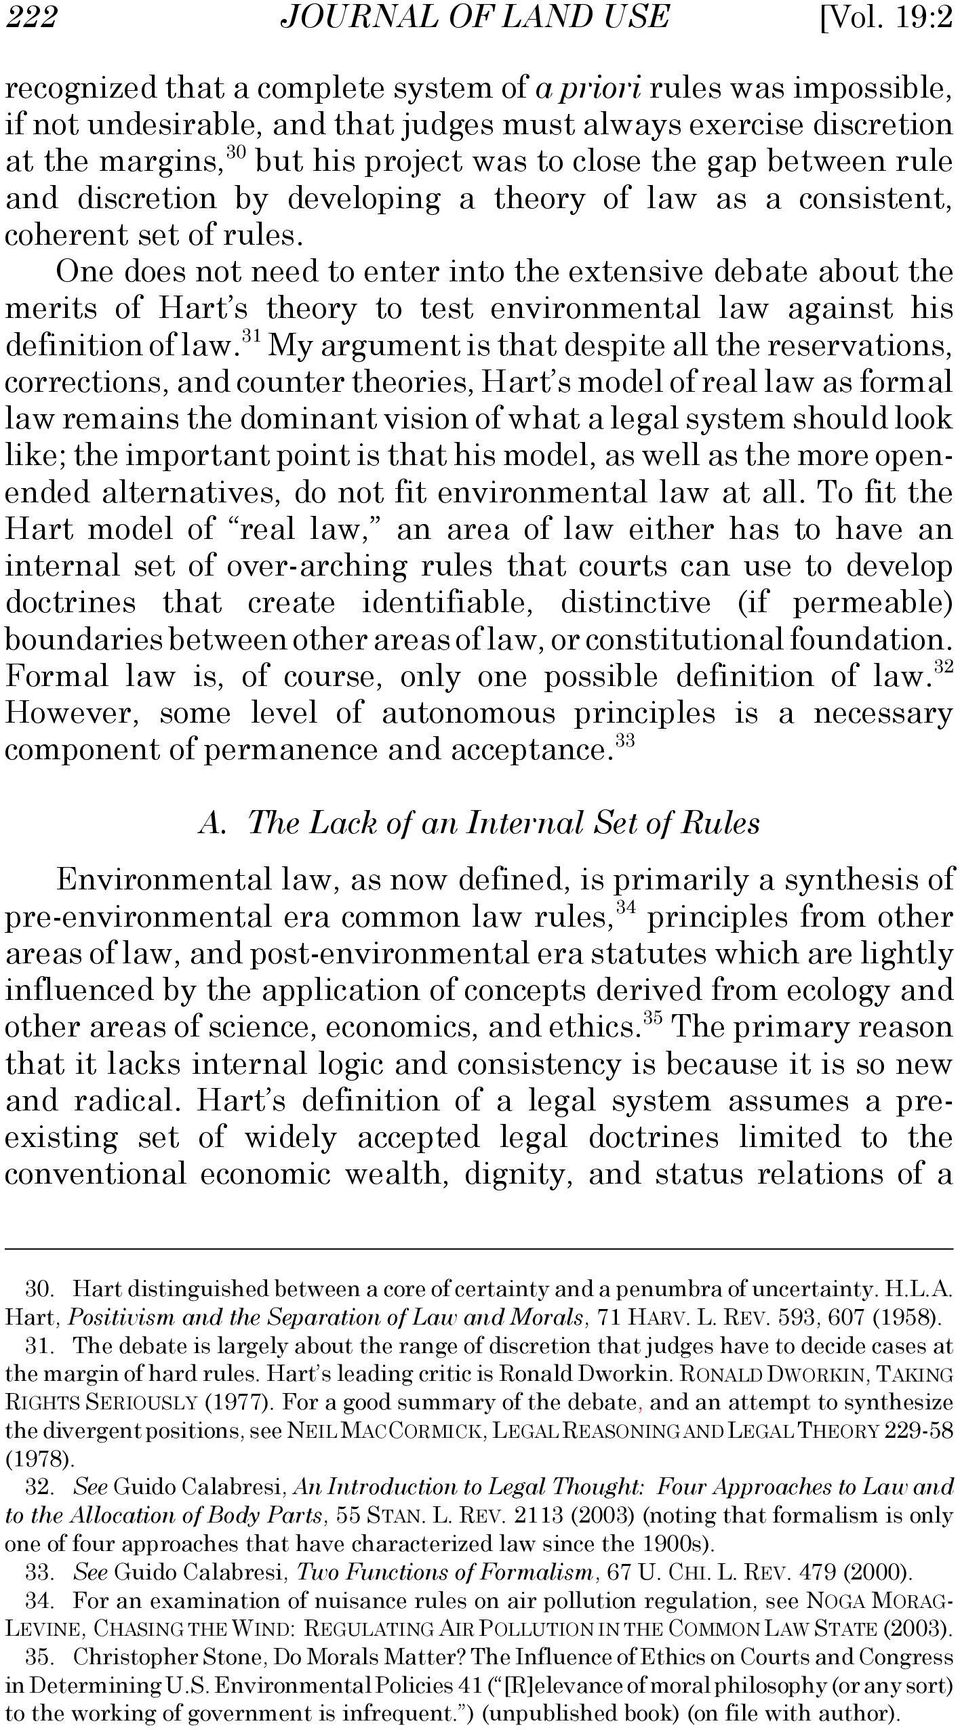 between rule and discretion by developing a theory of law as a consistent, coherent set of rules.